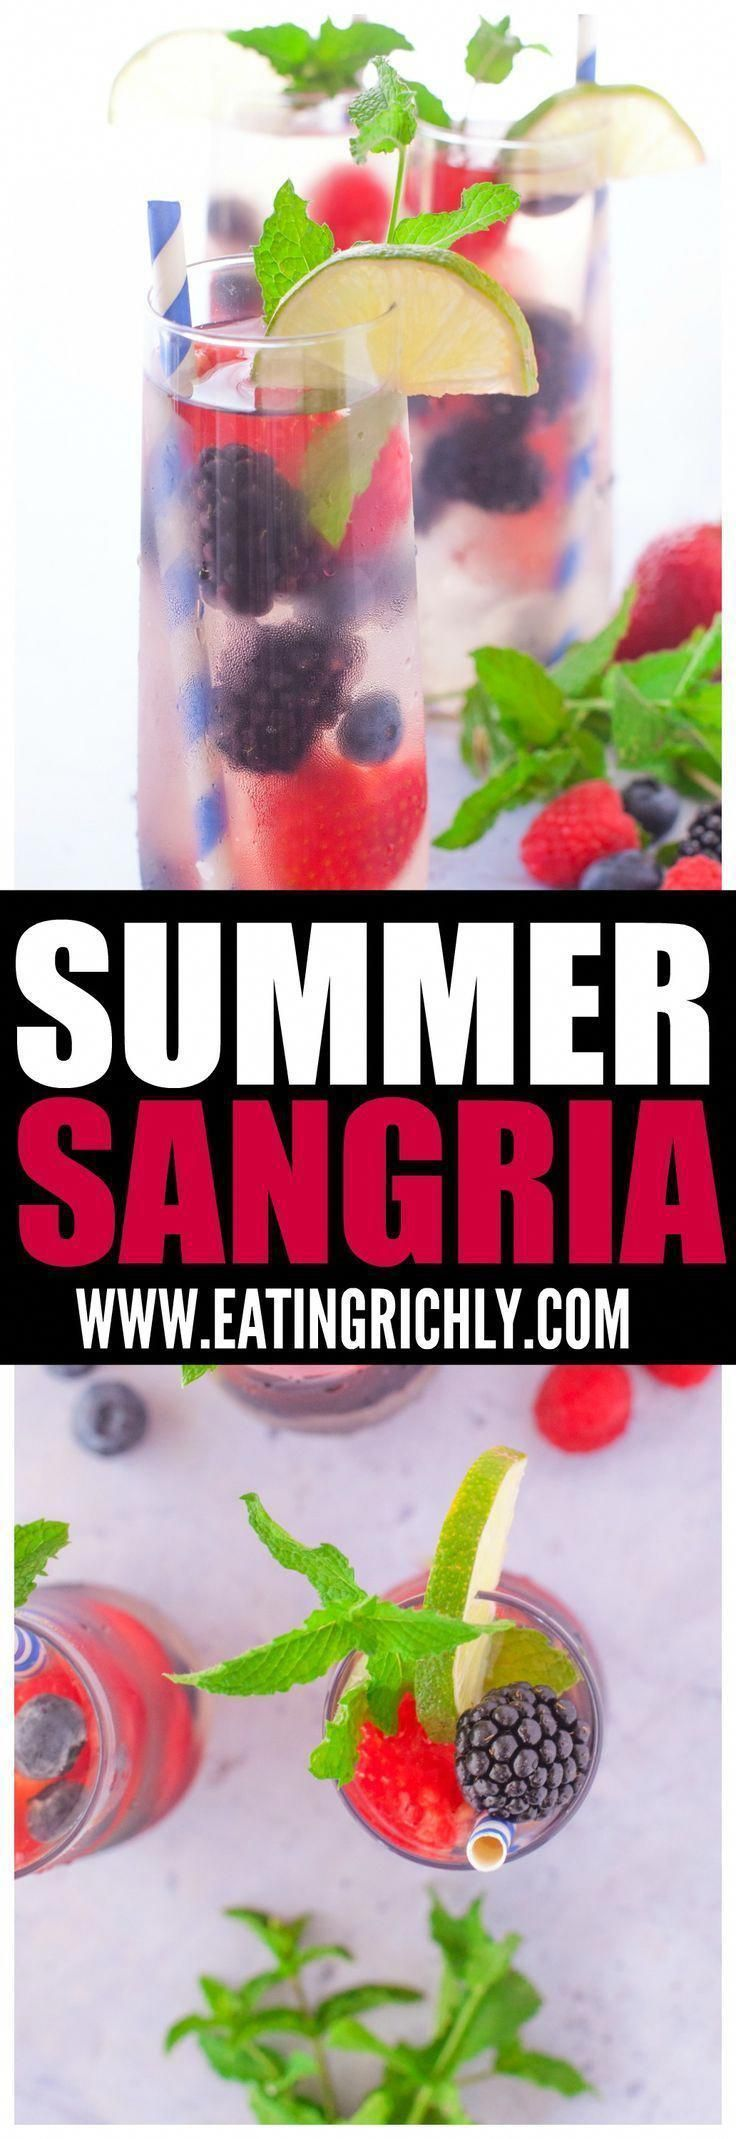 We Will Not Wait To Indicate Someone Around Our Lovely Nearby Estate Look Up Data About Tastings Wineandfood Summer Sangria White Sangria Recipe Berry Punch